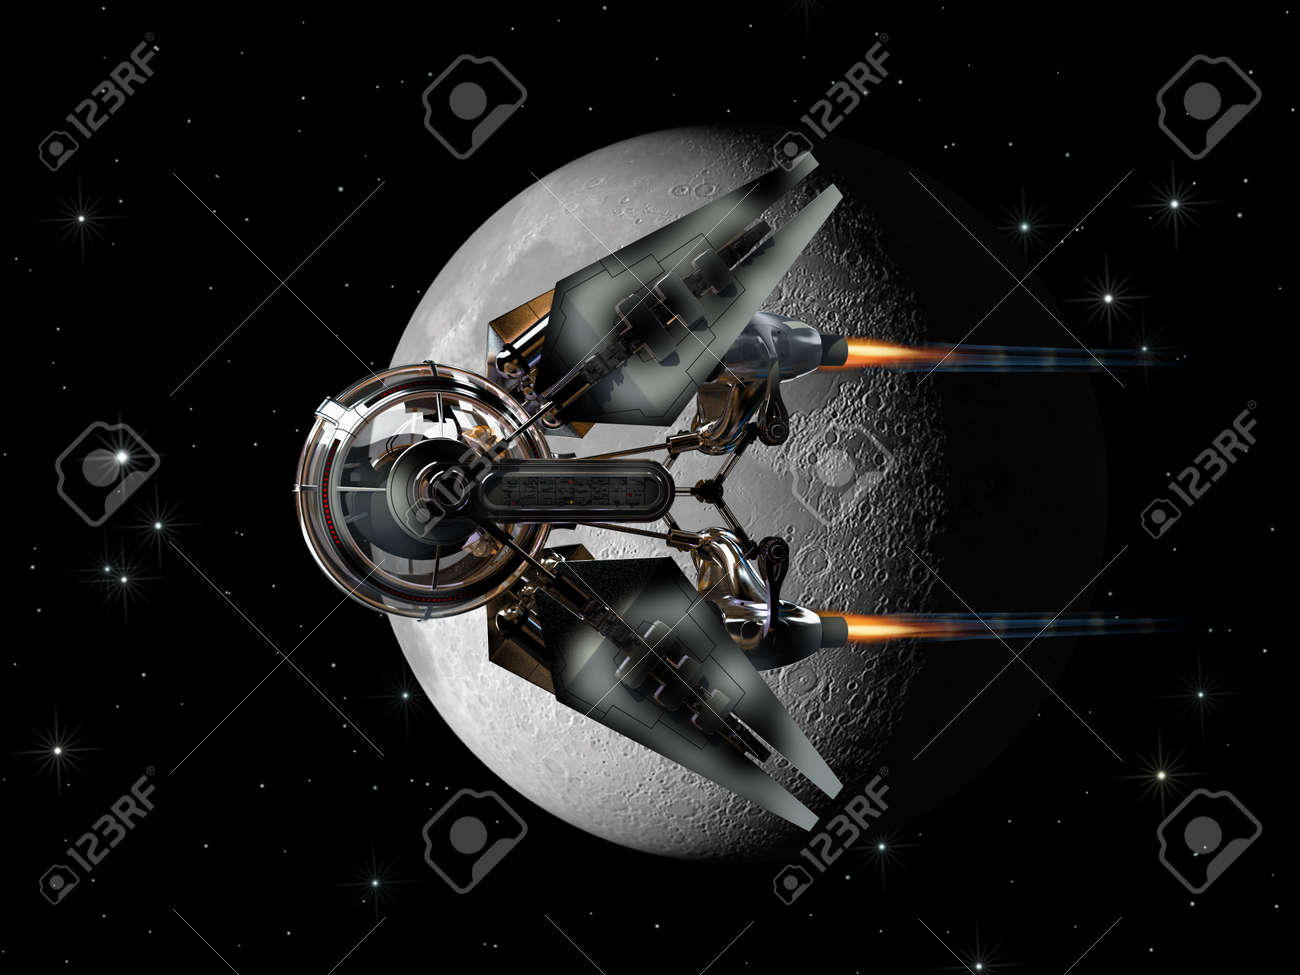 Alien Spaceship With Spherical Drone Like Pod Passing The Moon For Futuristic Space Exploration Or Fantasy